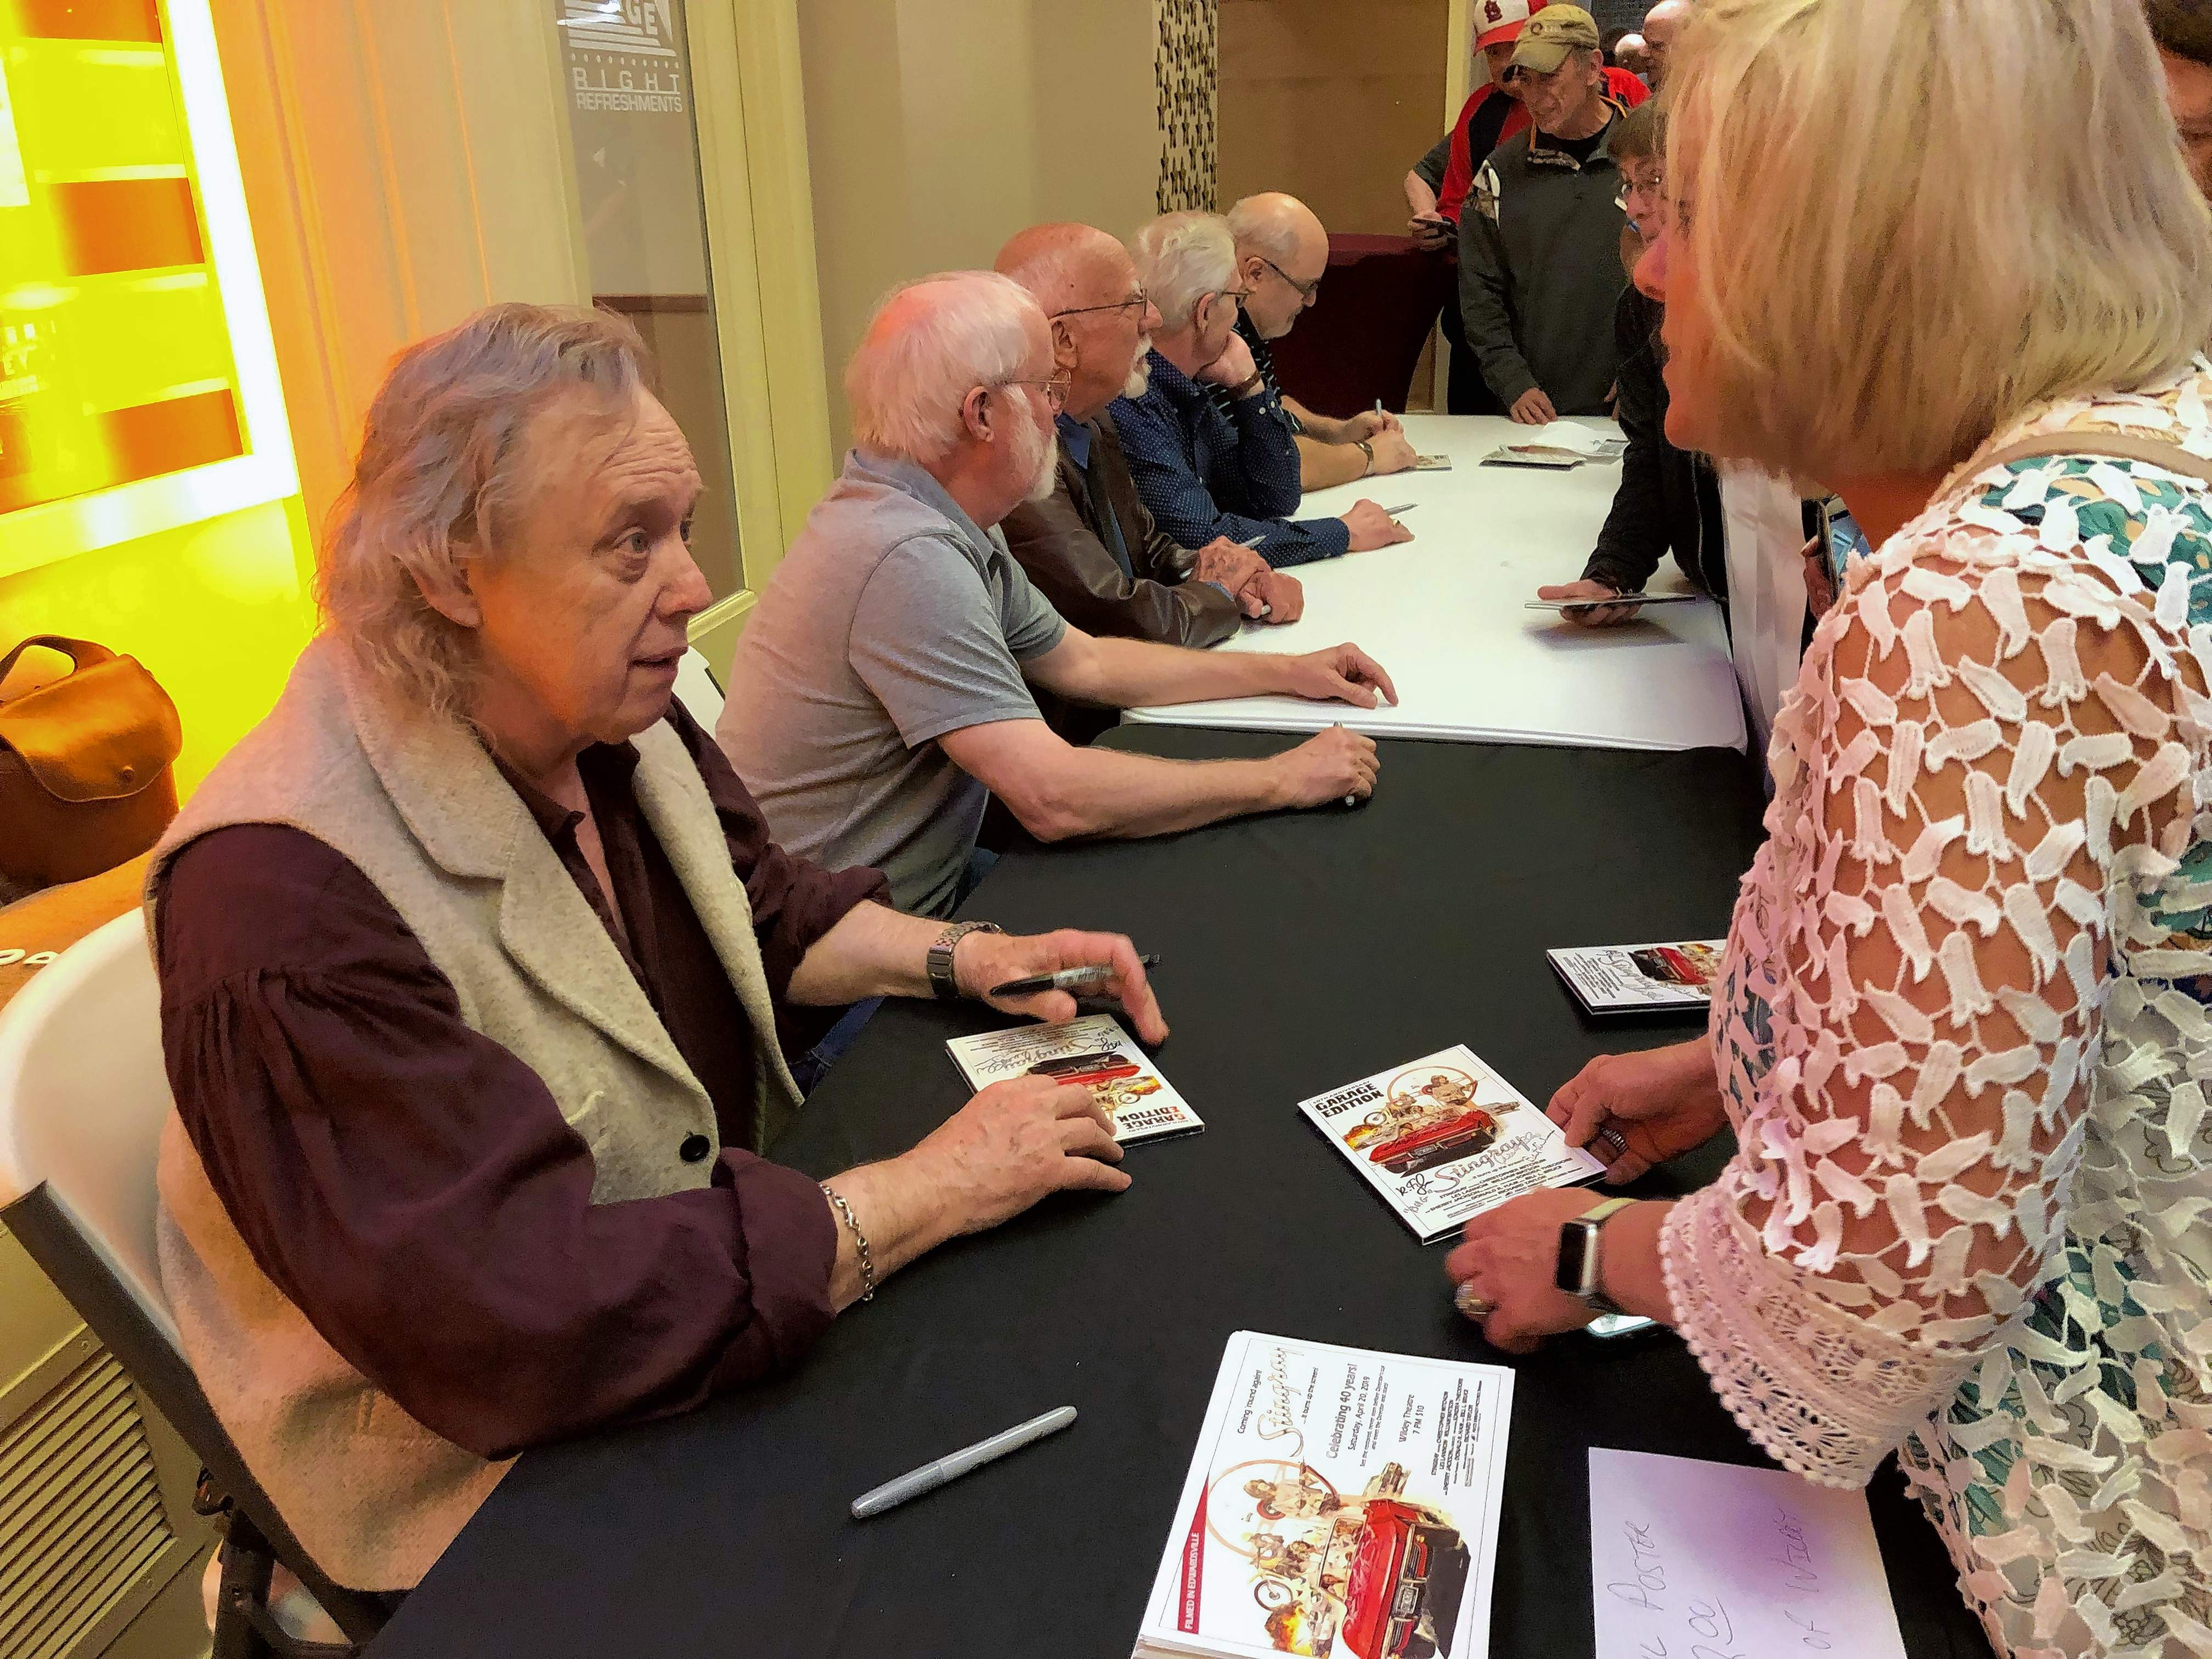 """Robin Payne of Bunker Hill chats with actor Les Lannom during a nearly two-hour autograph session following the screening of the 40th Anniversary """"Garage Edition"""" of the 1978 cult classic """"Stingray"""" in Edwardsville Saturday evening."""